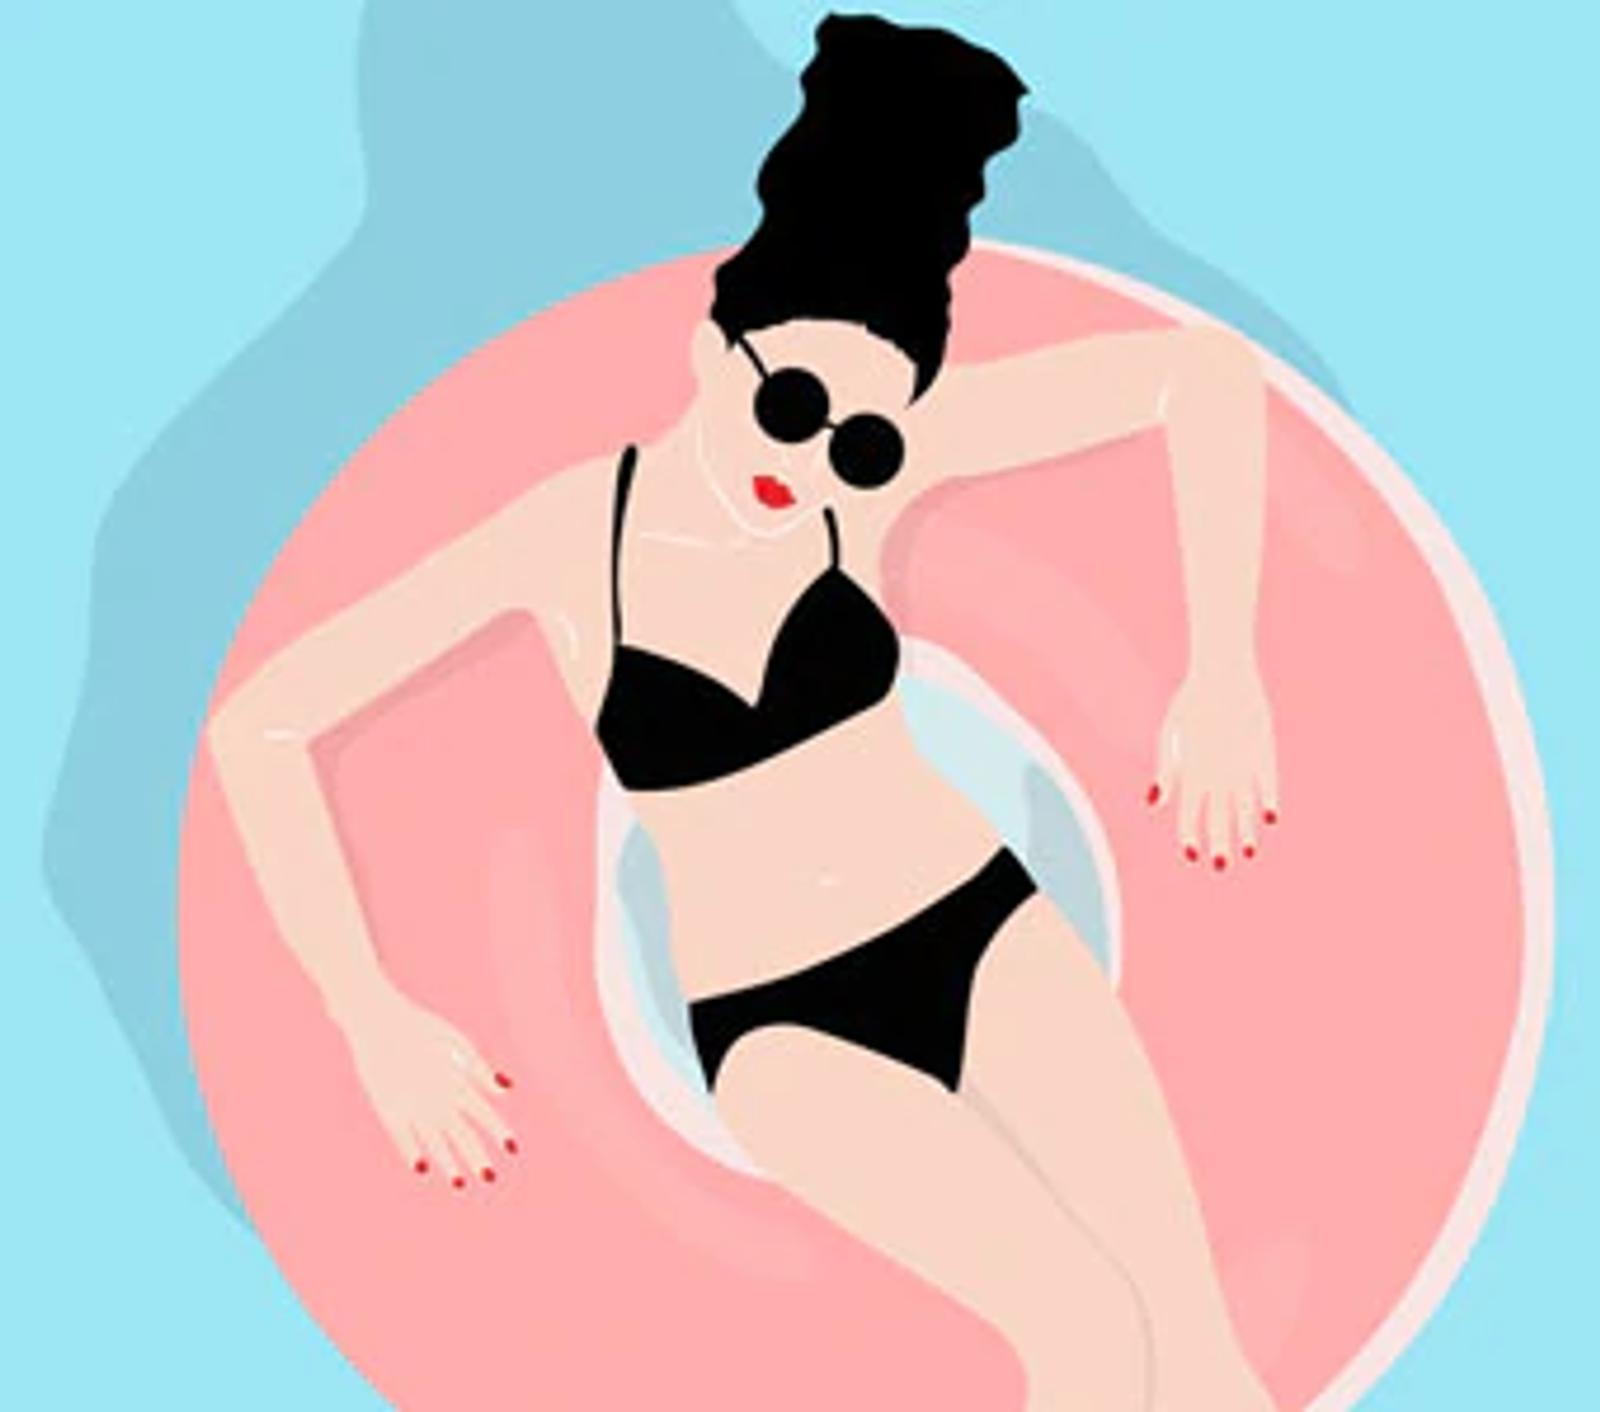 Illustration of Woman on Swim Float